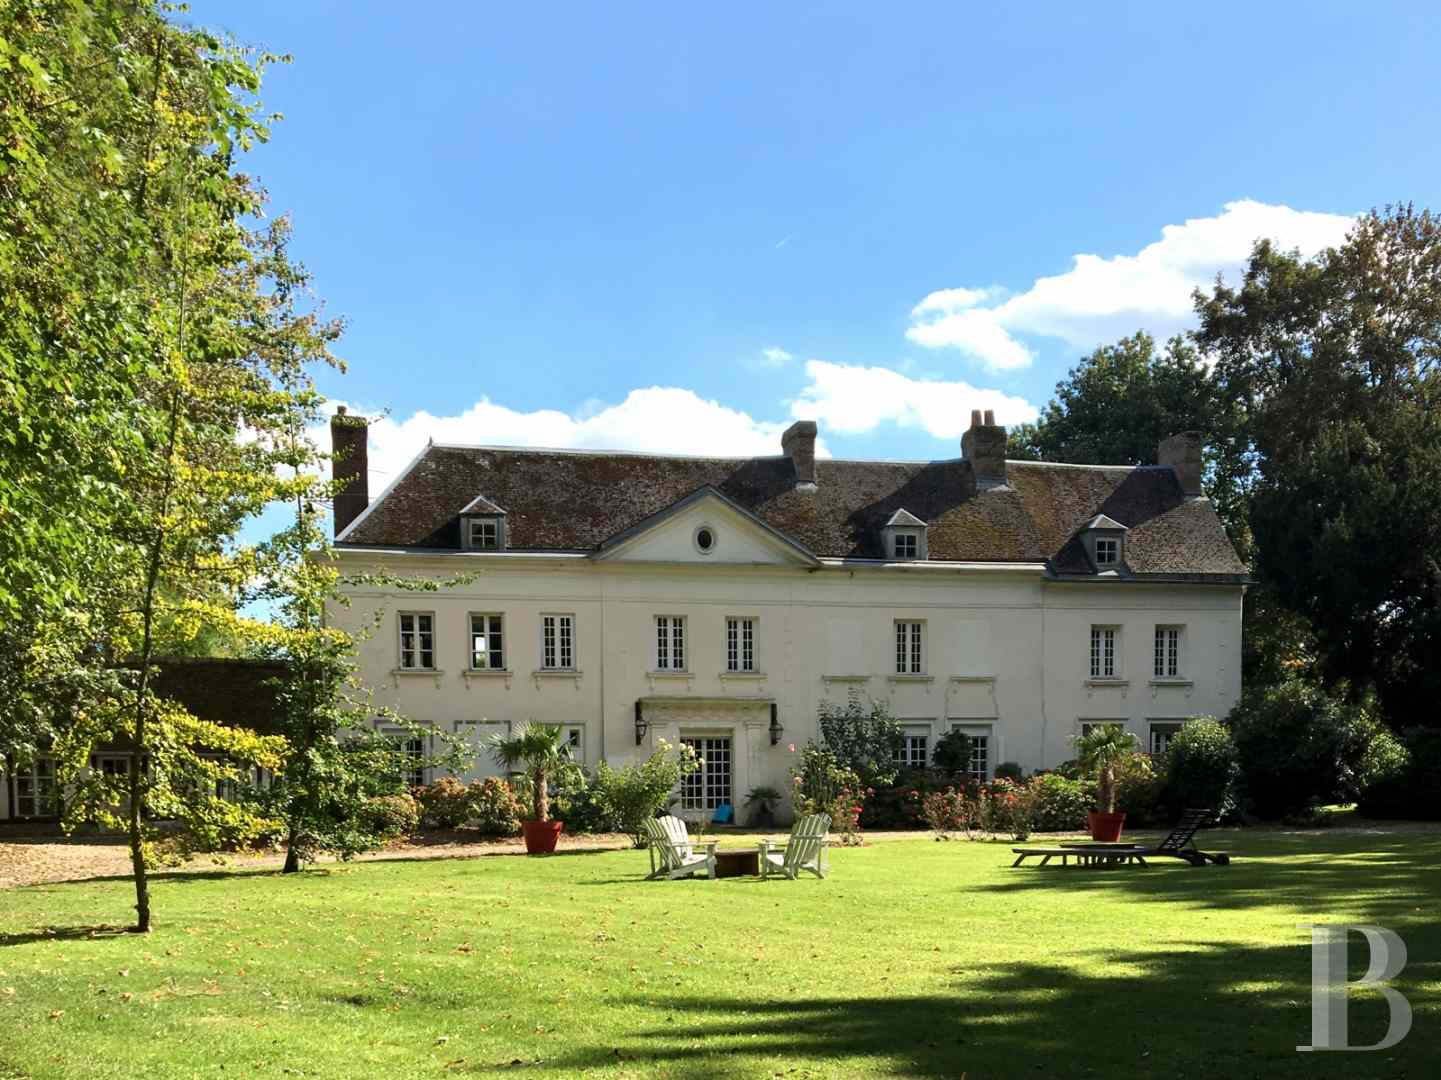 France mansions for sale upper normandy manors village - 1 zoom